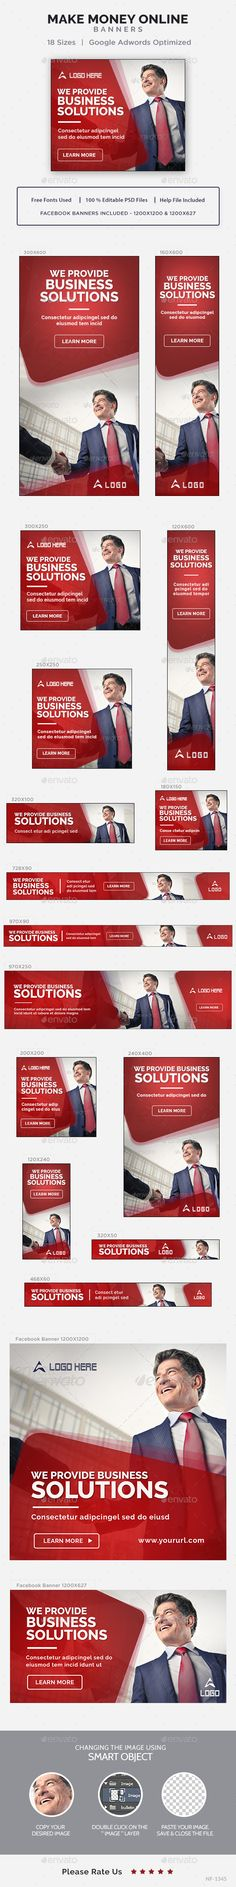 Business Banners Template PSD. Download here: http://graphicriver.net/item/business-banners/16516473?ref=ksioks